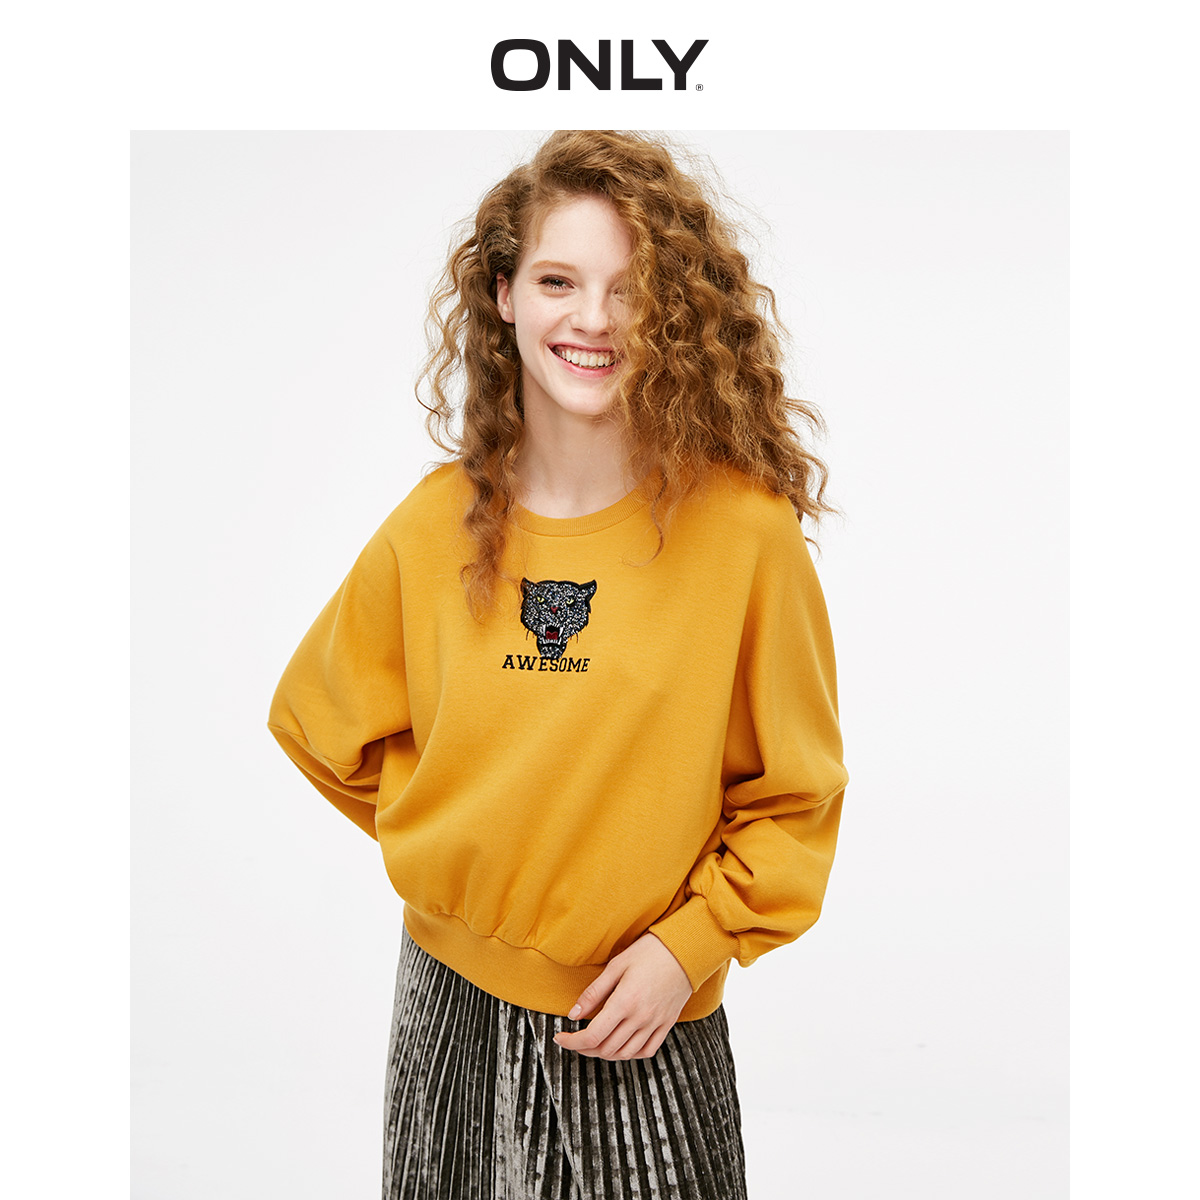 ONLY Women's Pure Color Round Neckline Embroidered Tiger Head Batwing Sleeves Sweatshirt | 11919S514